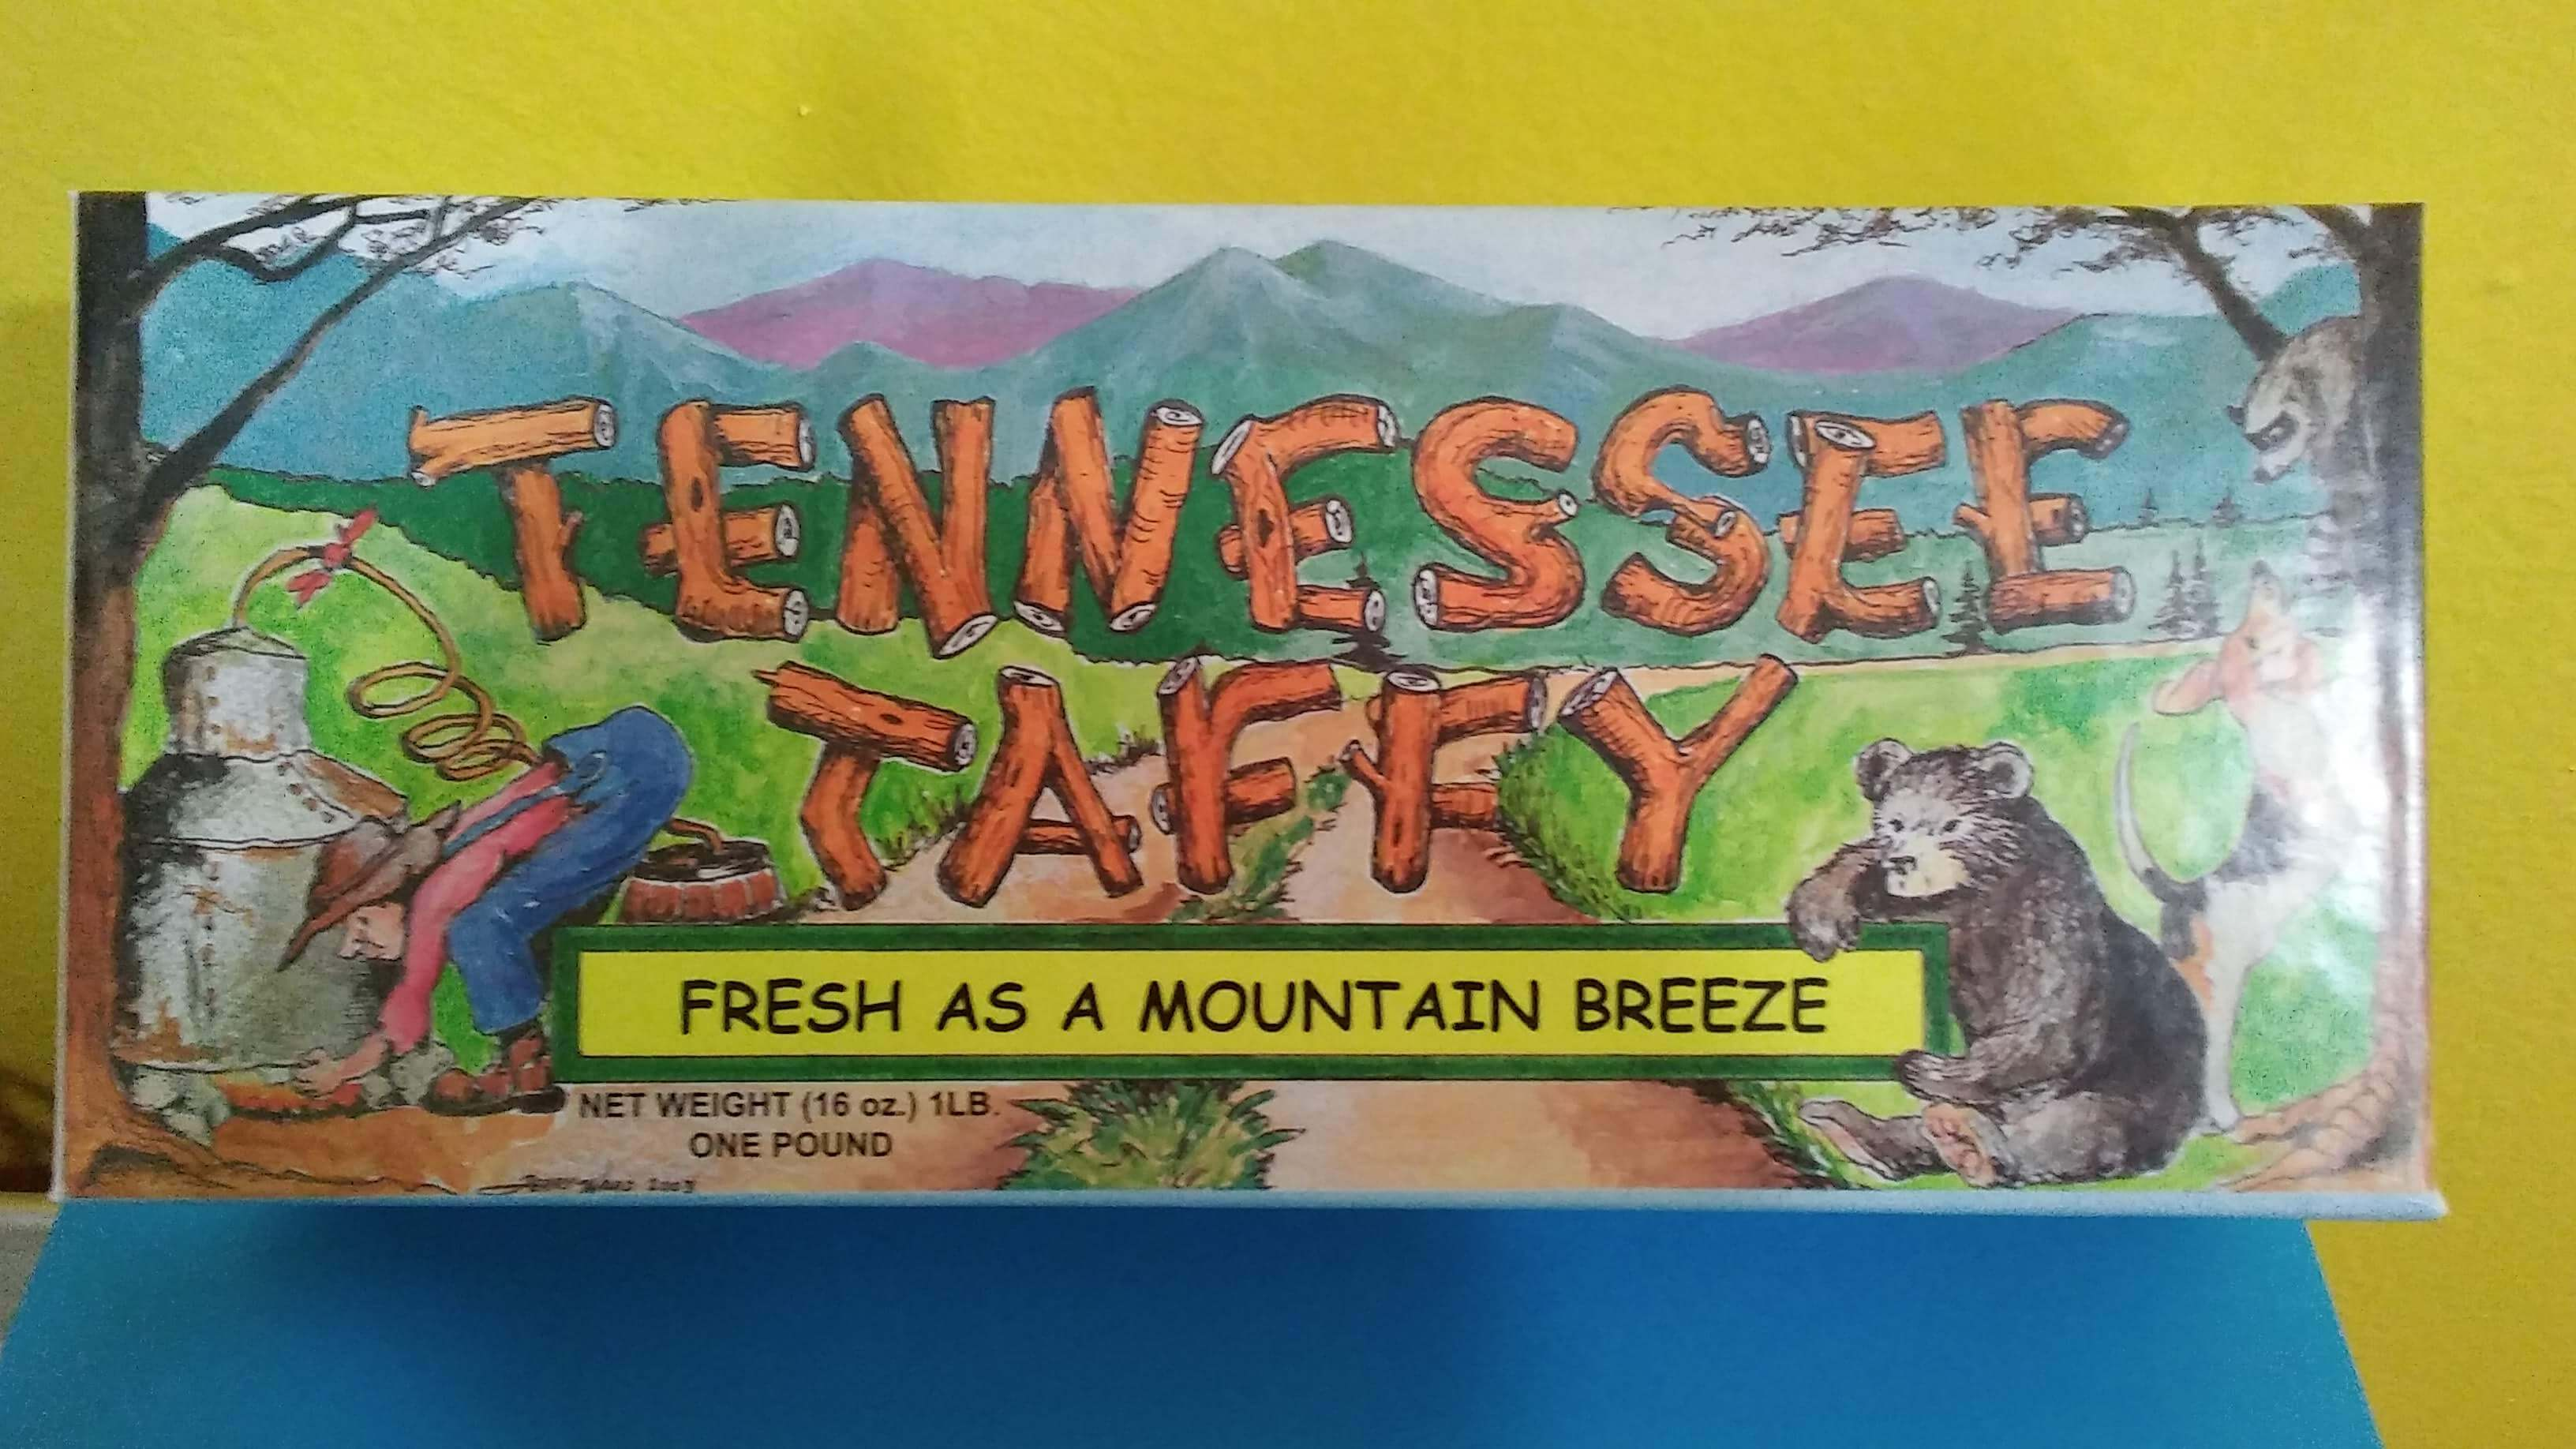 Tennessee Taffy